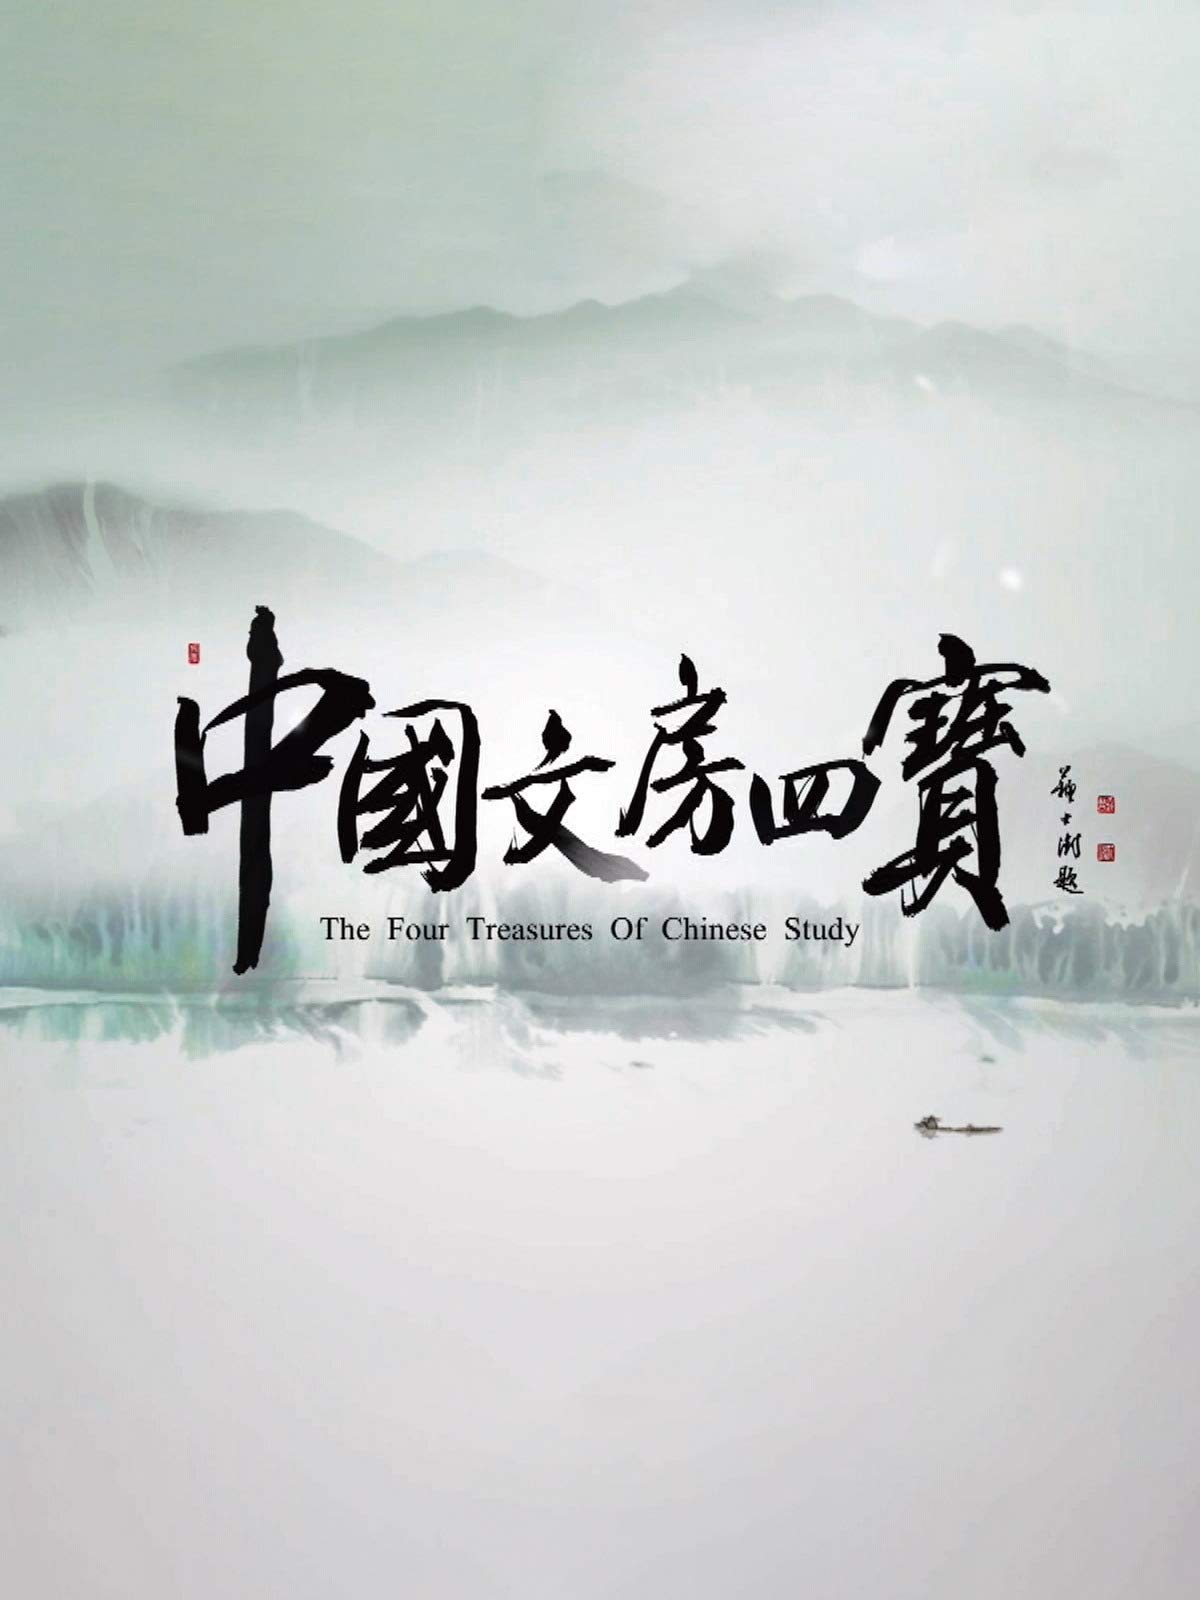 The Four Treasures Of Chinese Study on Amazon Prime Video UK